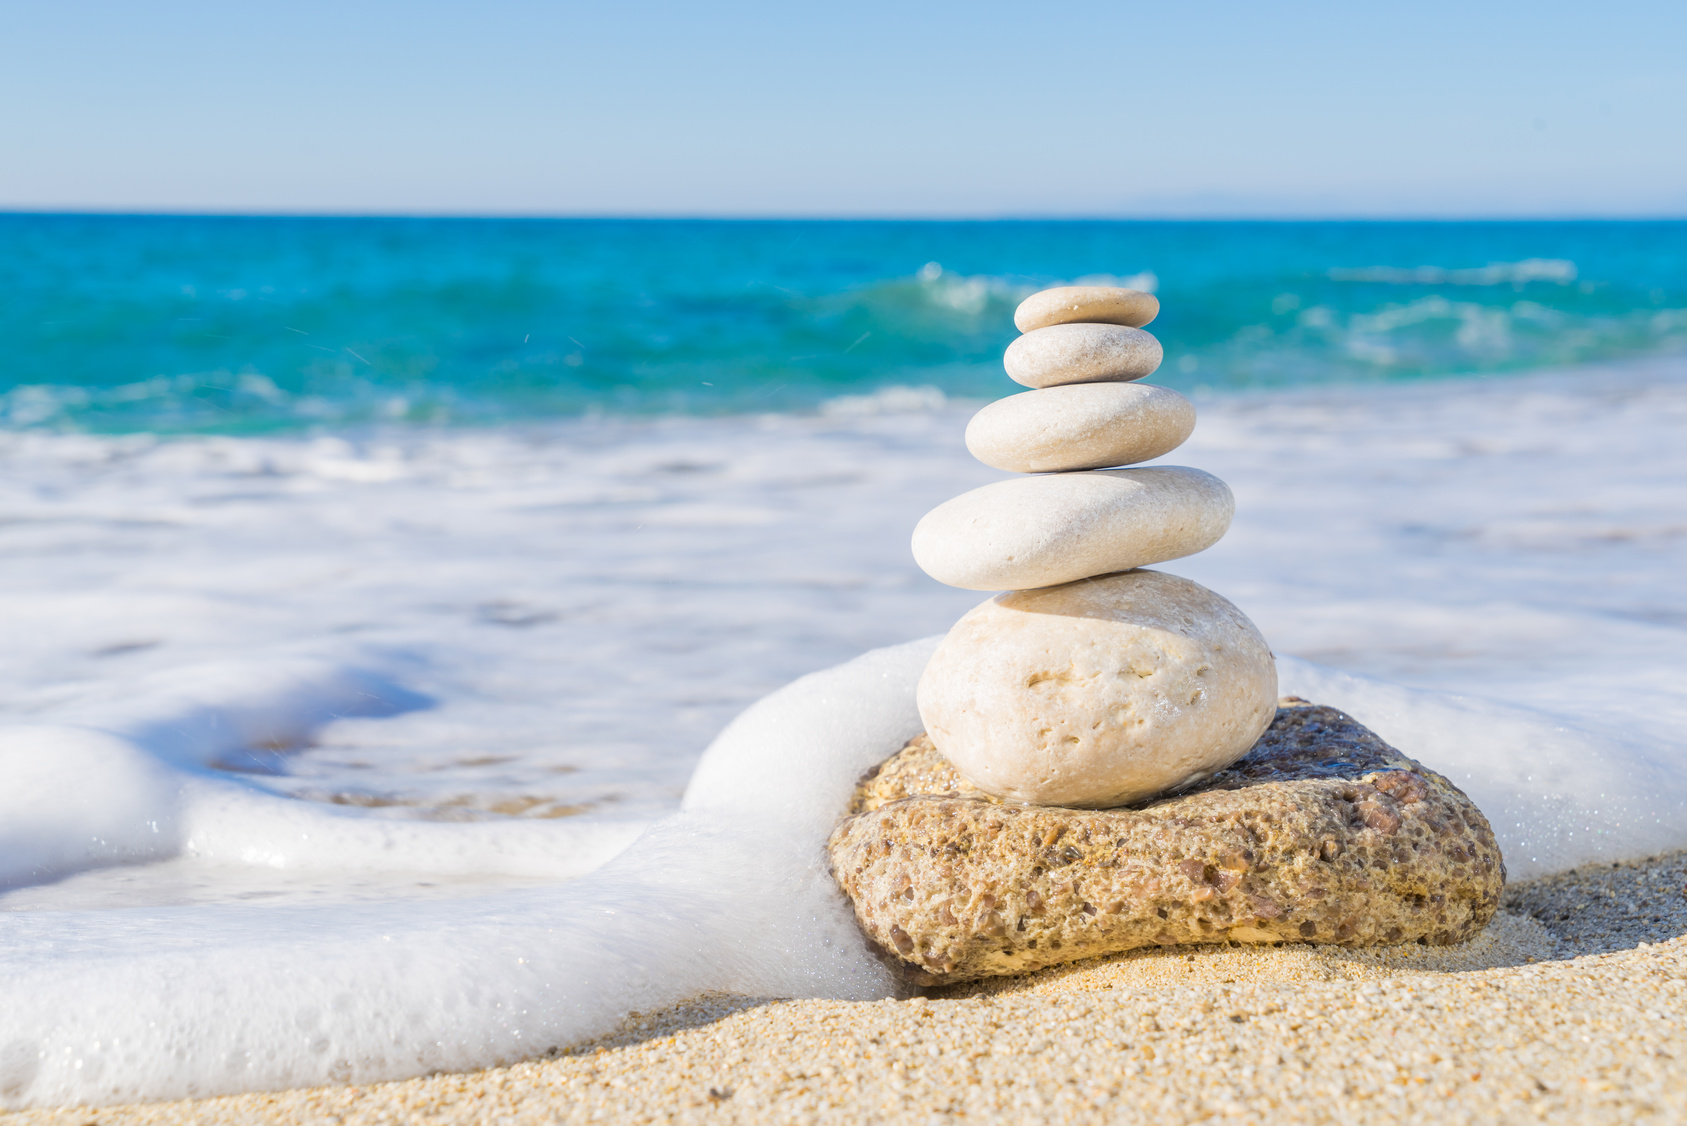 ocean with foam and stacked rocks on a beach, mindfulness meditation